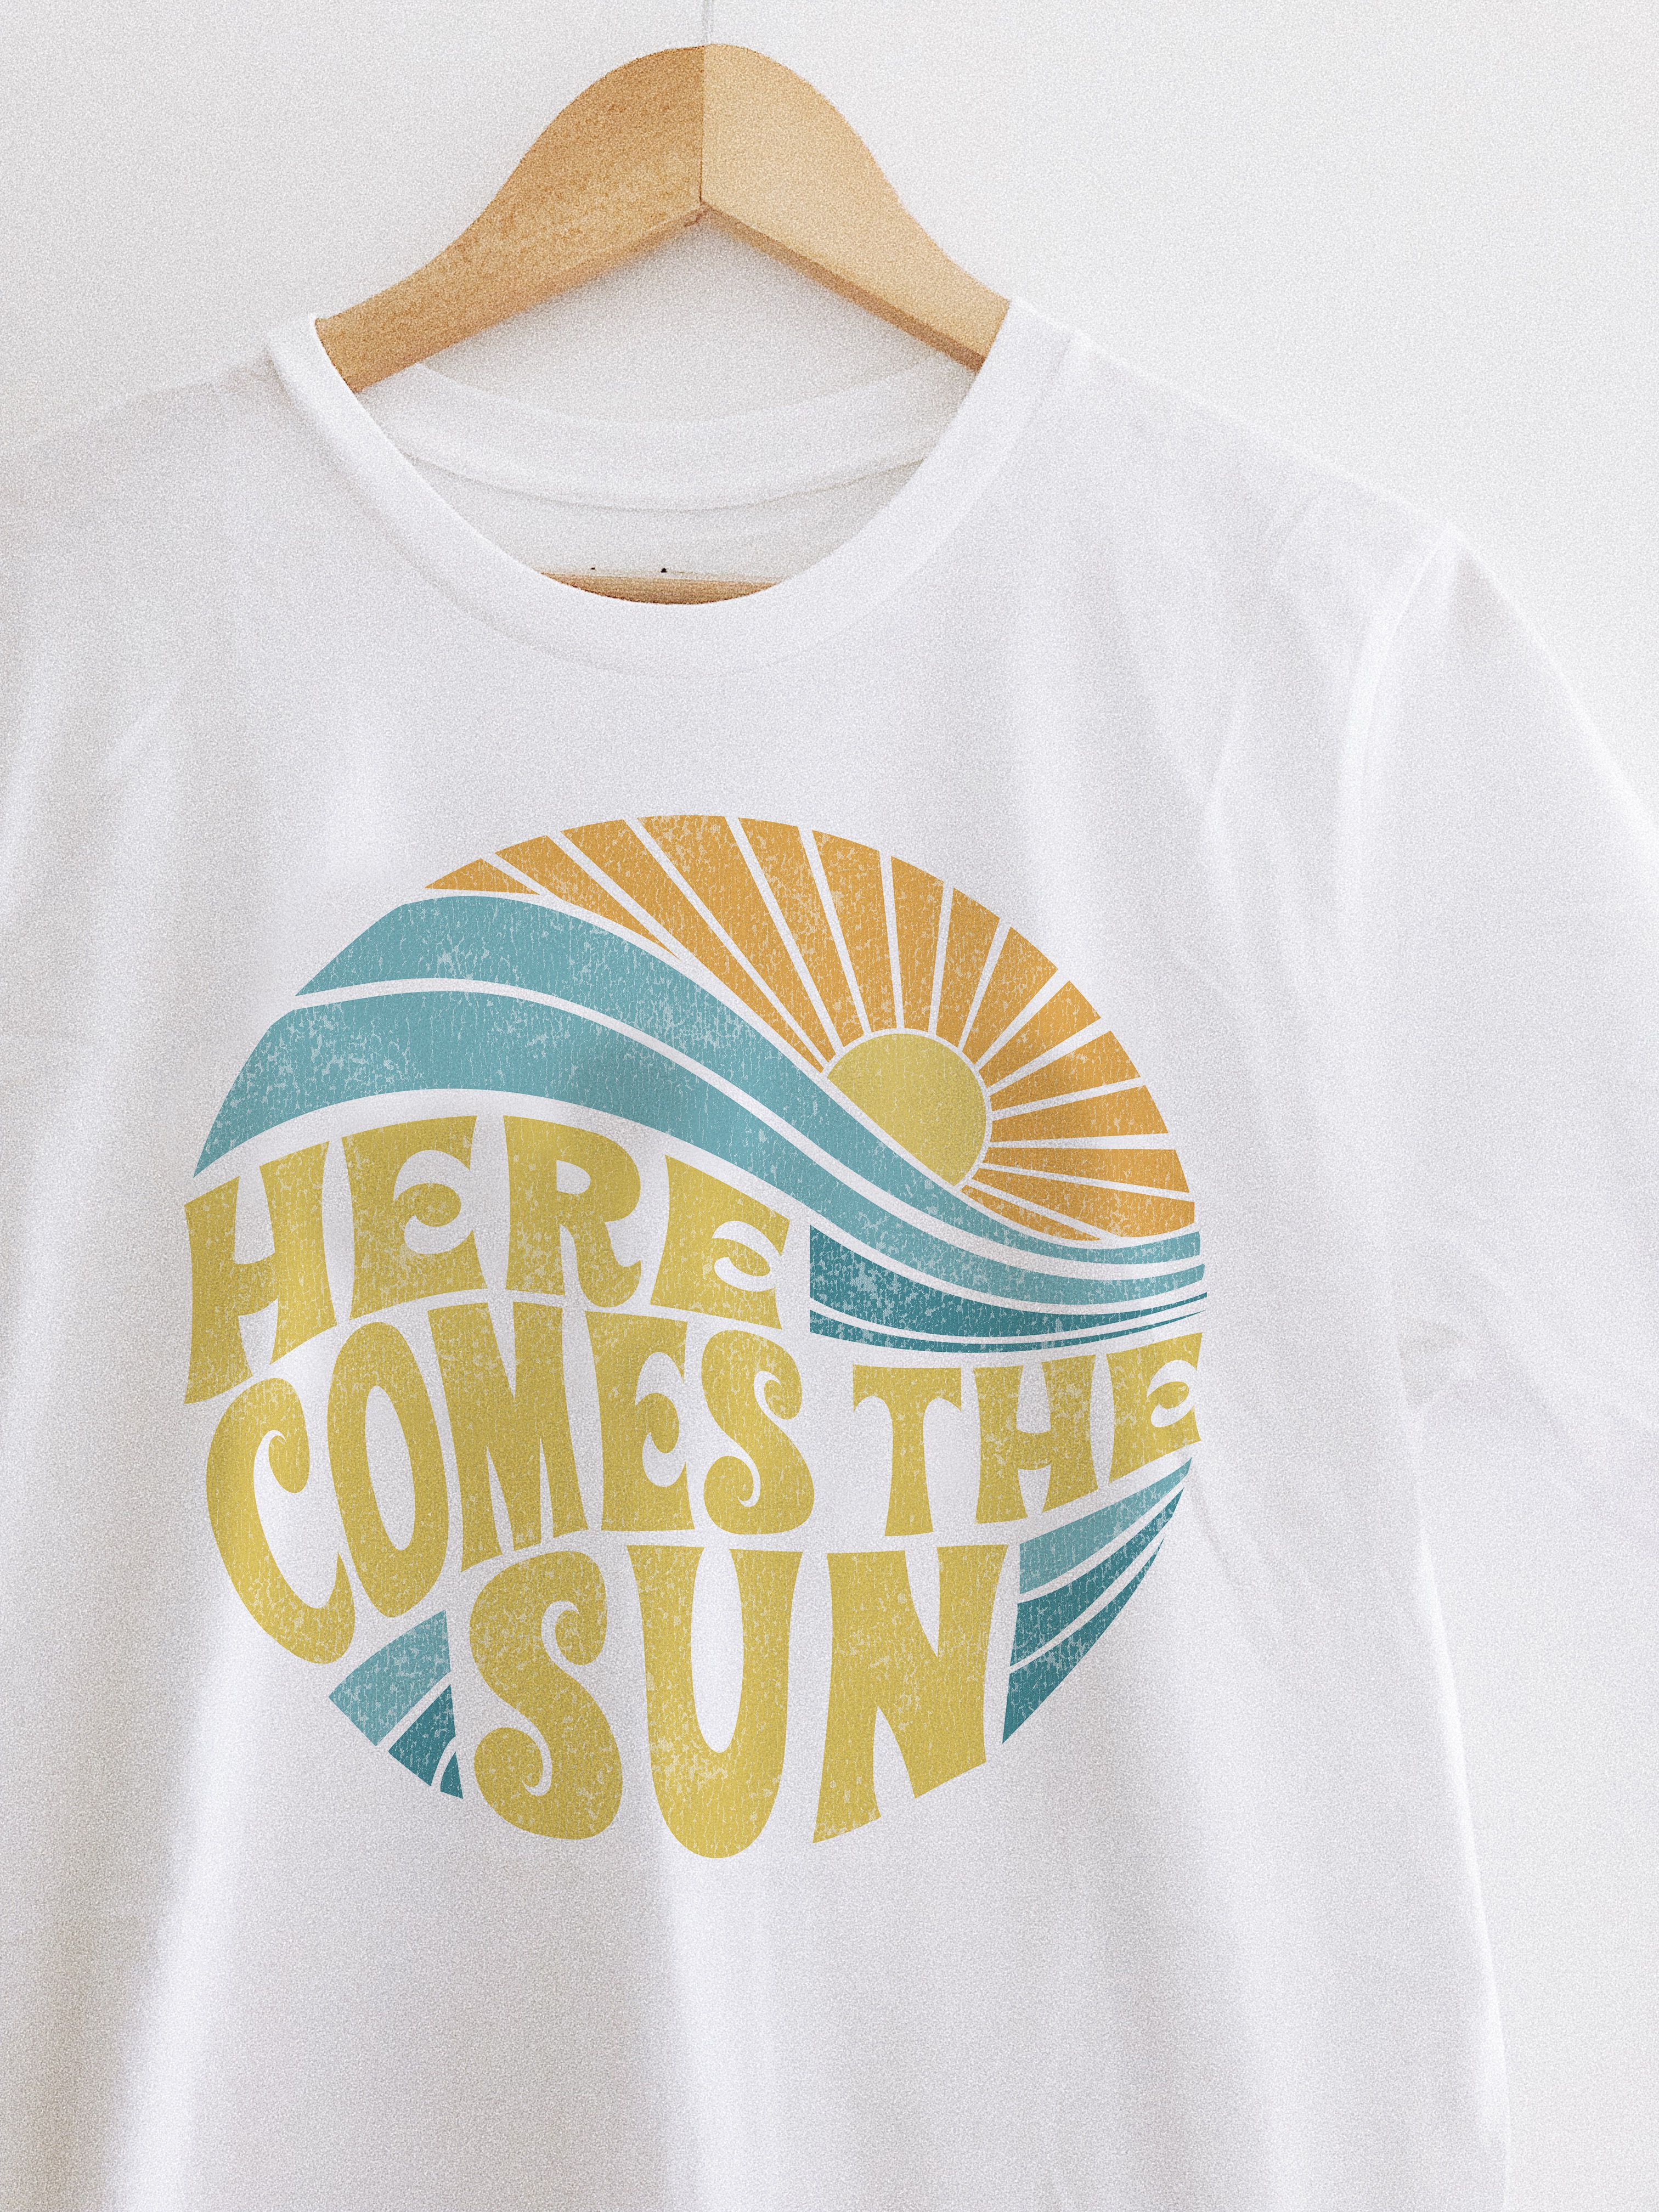 Here Comes The Sun Vintage Inspired Beach Graphic T Shirt Graphictee